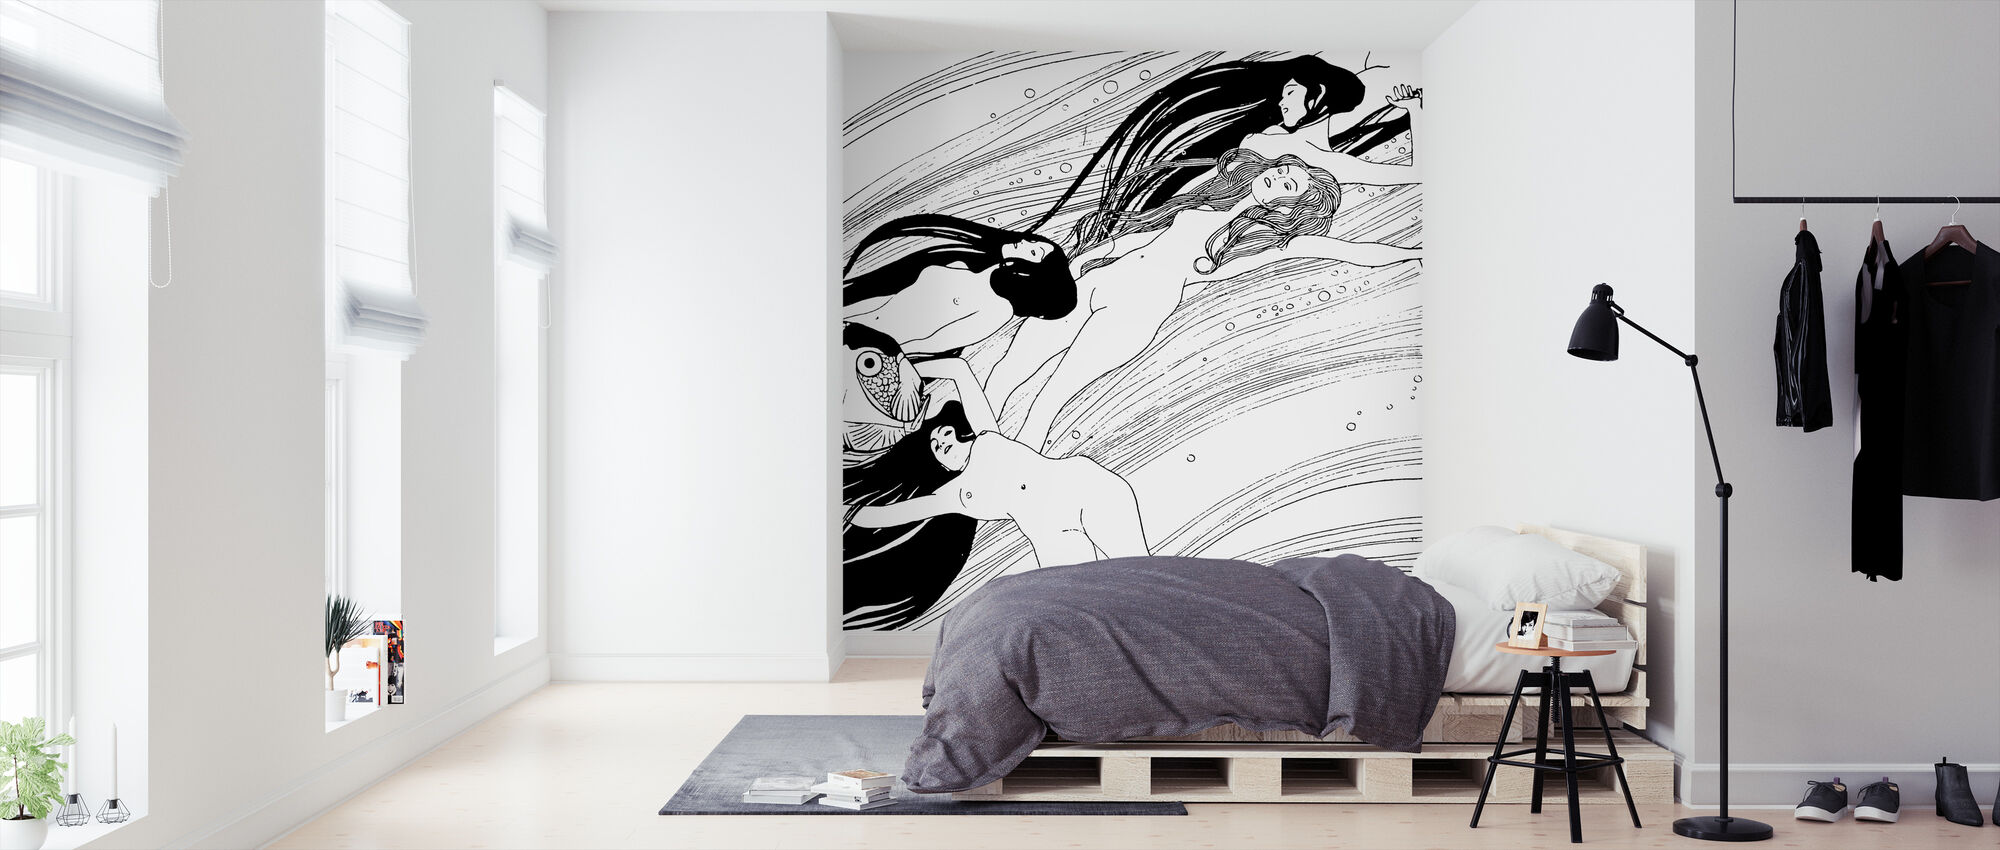 Blood of Fish - Gustav Klimt - Wallpaper - Bedroom